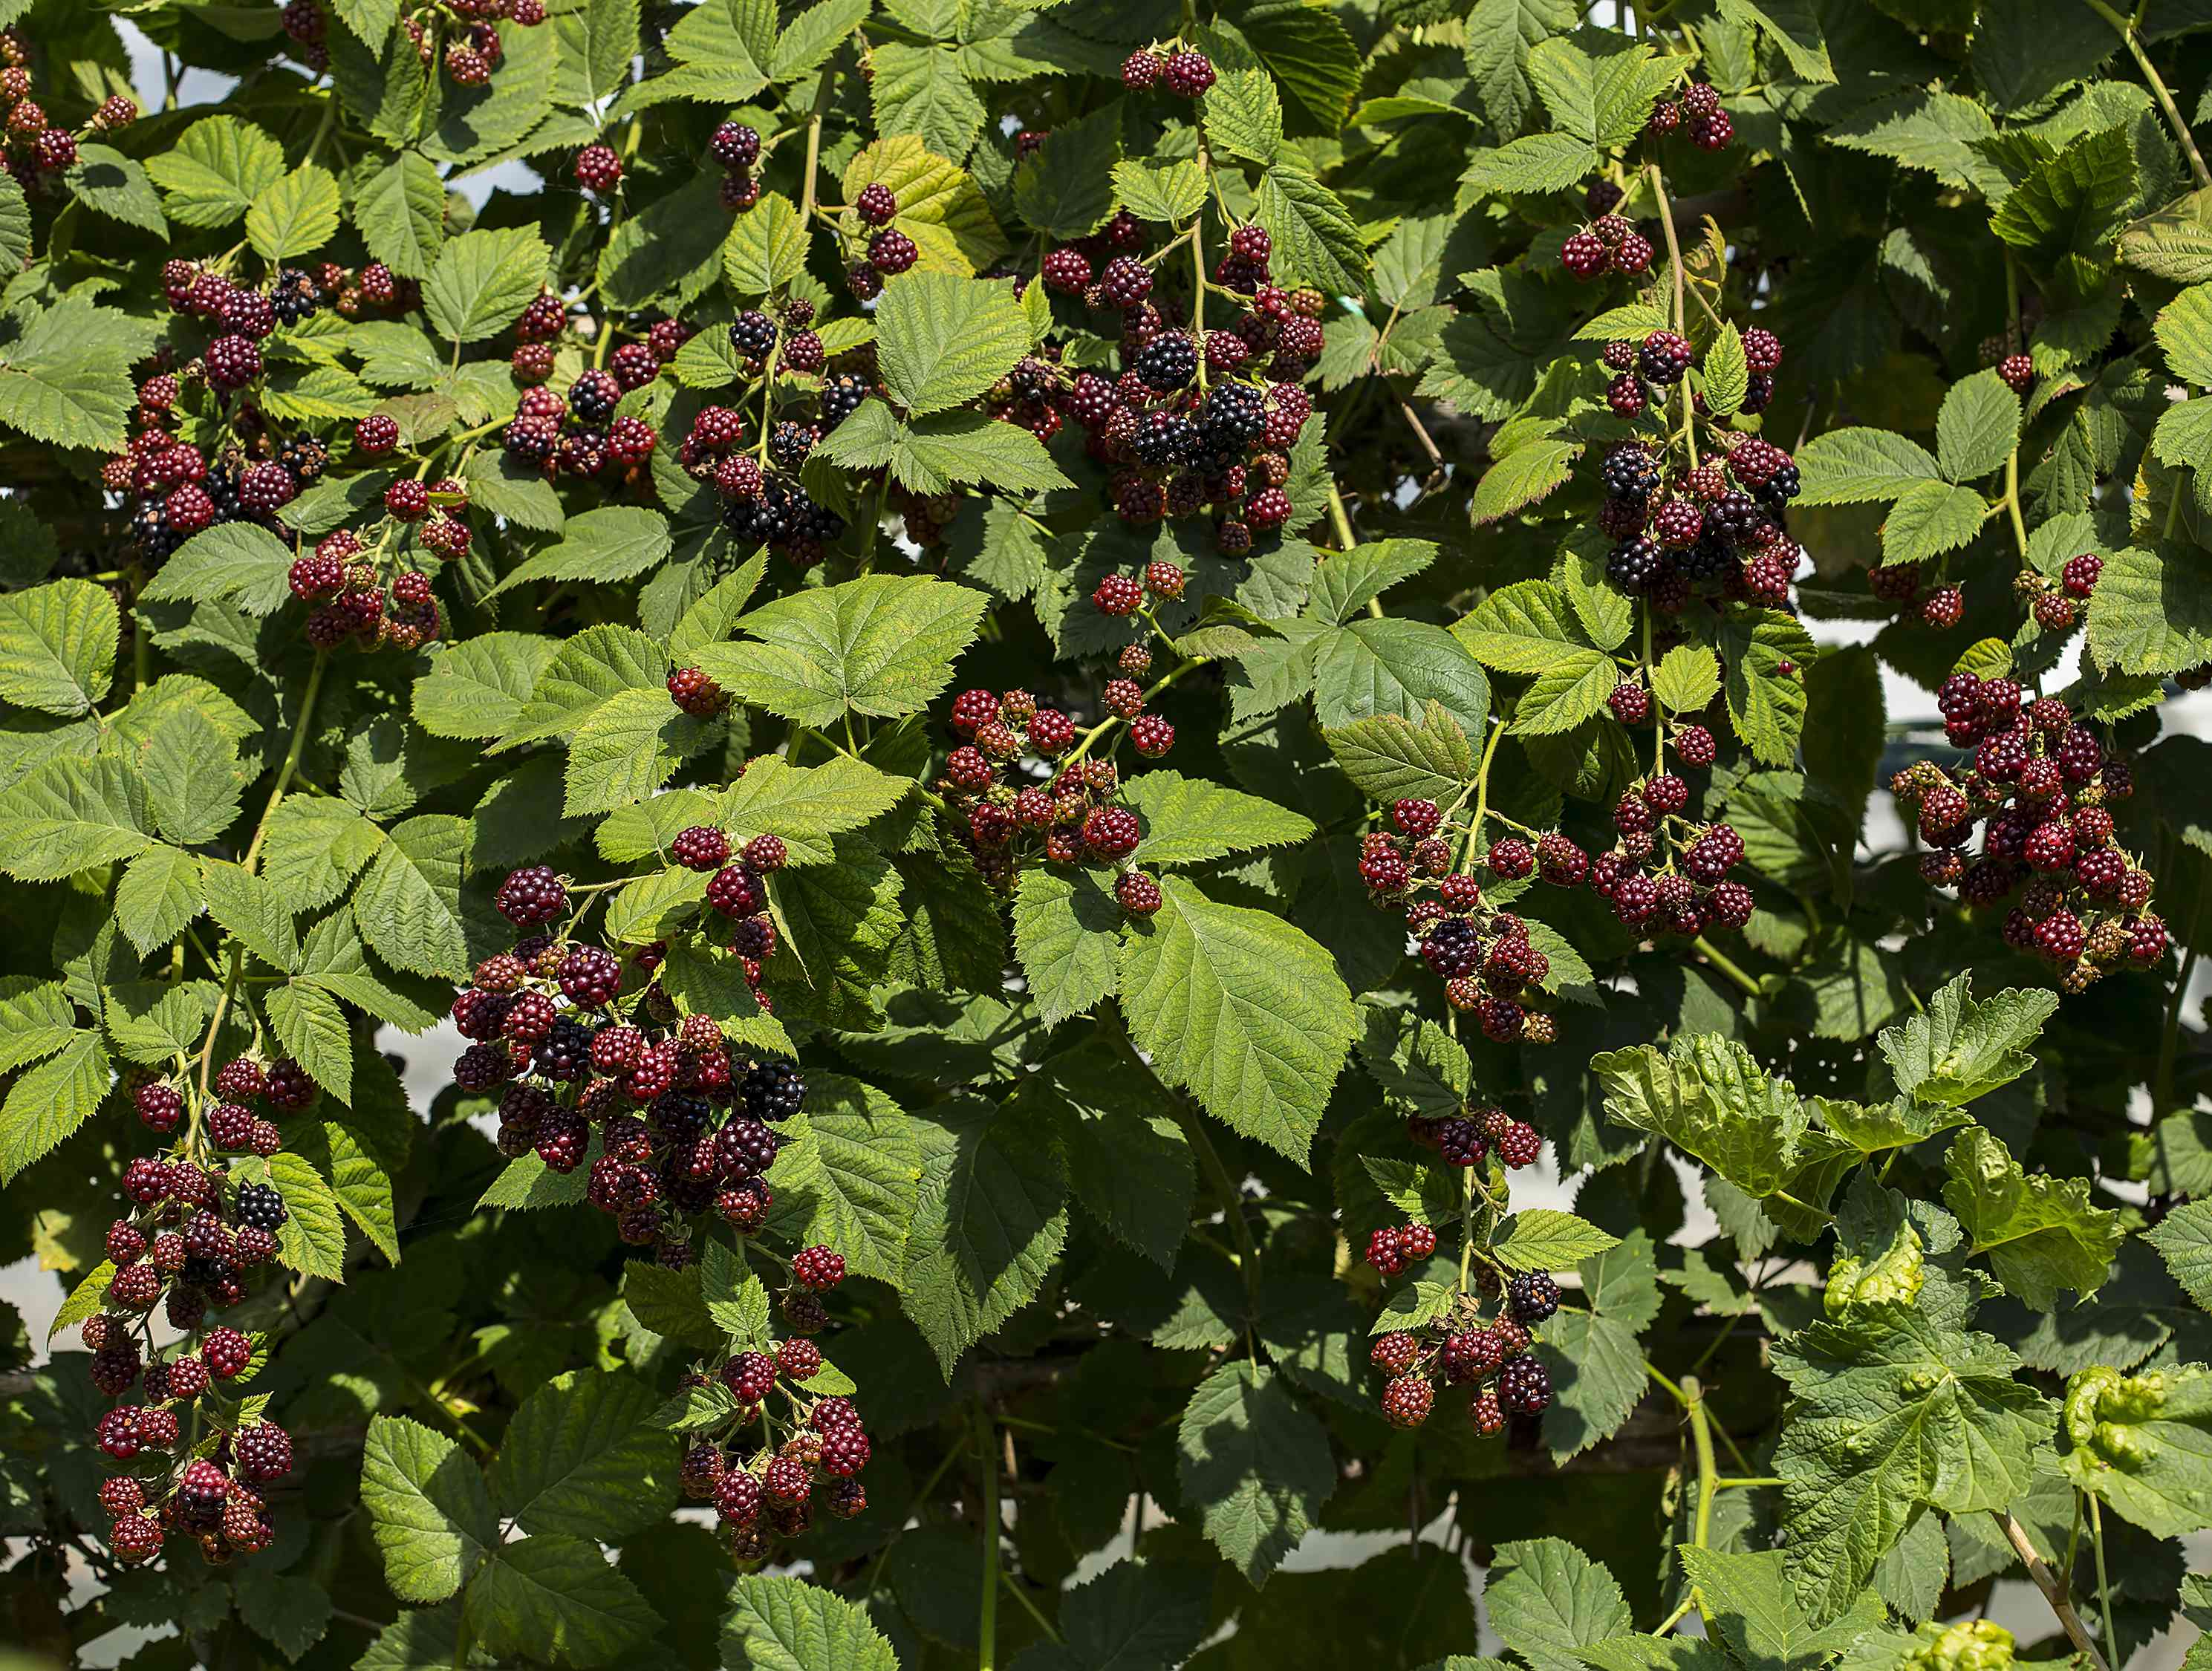 large blackberry bush filled with green leaves and blackberries